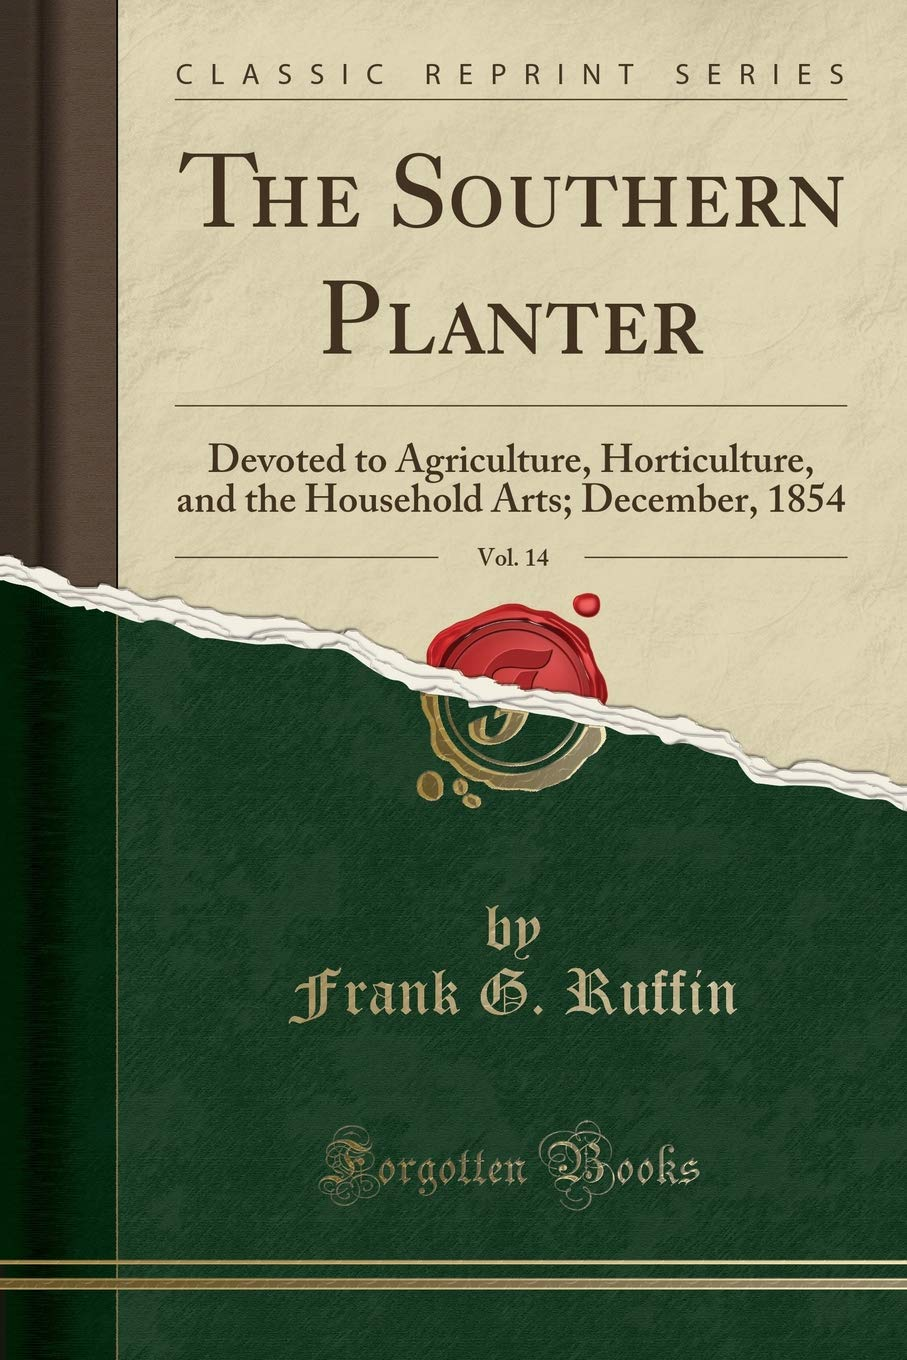 Download The Southern Planter, Vol. 14: Devoted to Agriculture, Horticulture, and the Household Arts; December, 1854 (Classic Reprint) ebook